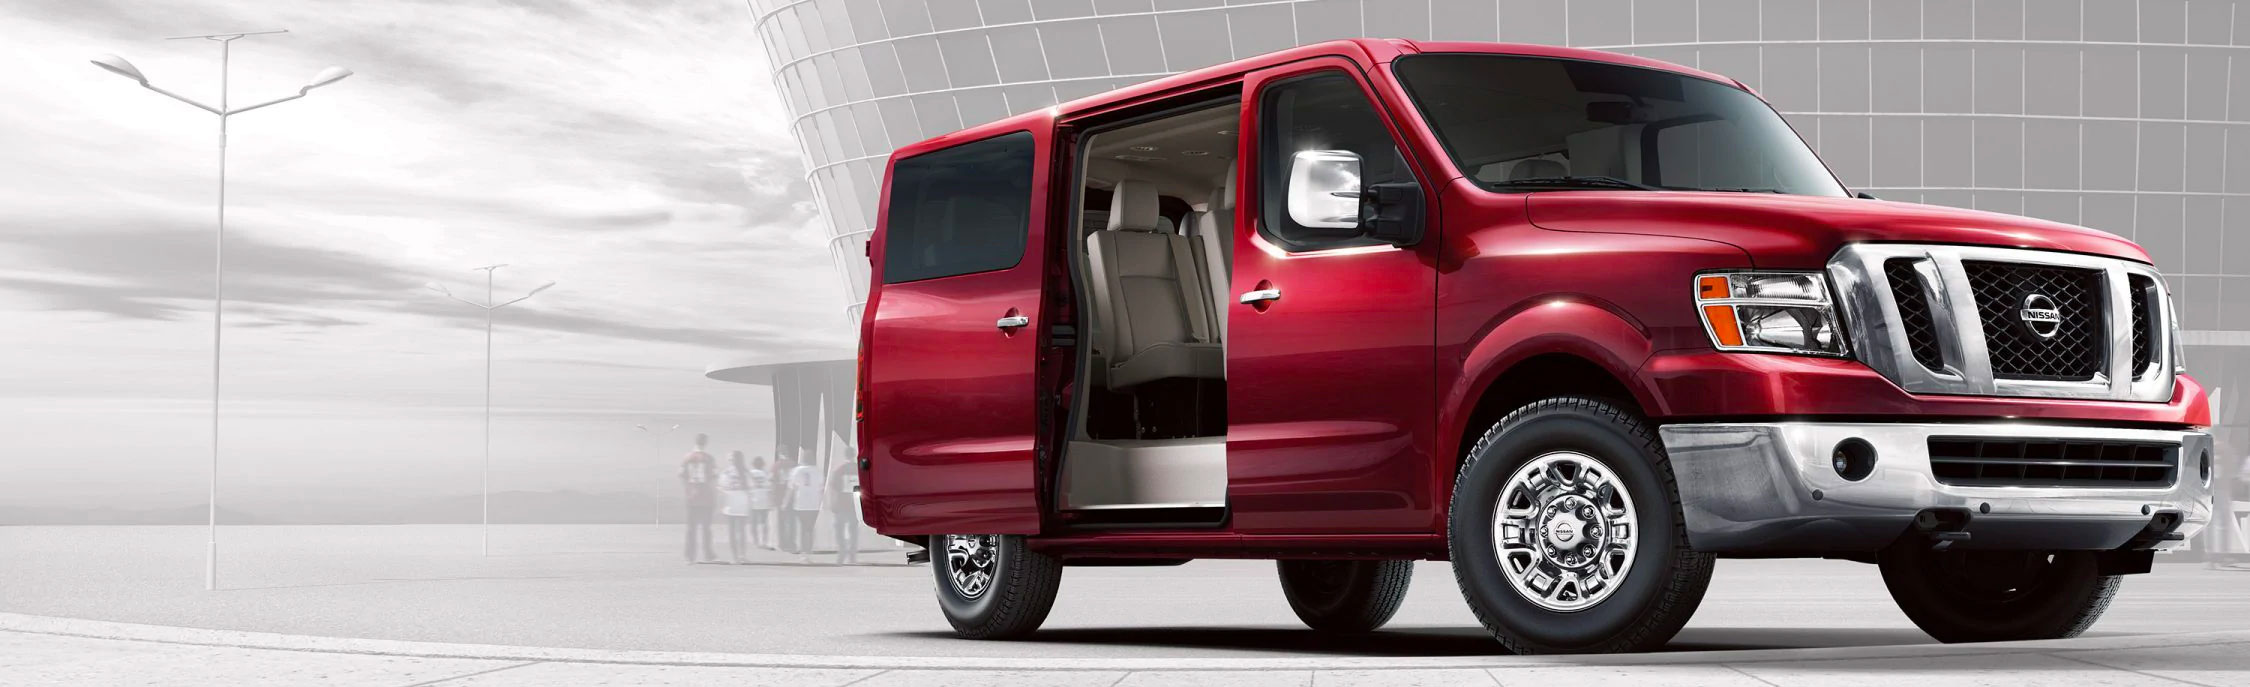 Meet The 2020 Nissan NV Passenger Van At Our Tomball, TX, Auto Dealer